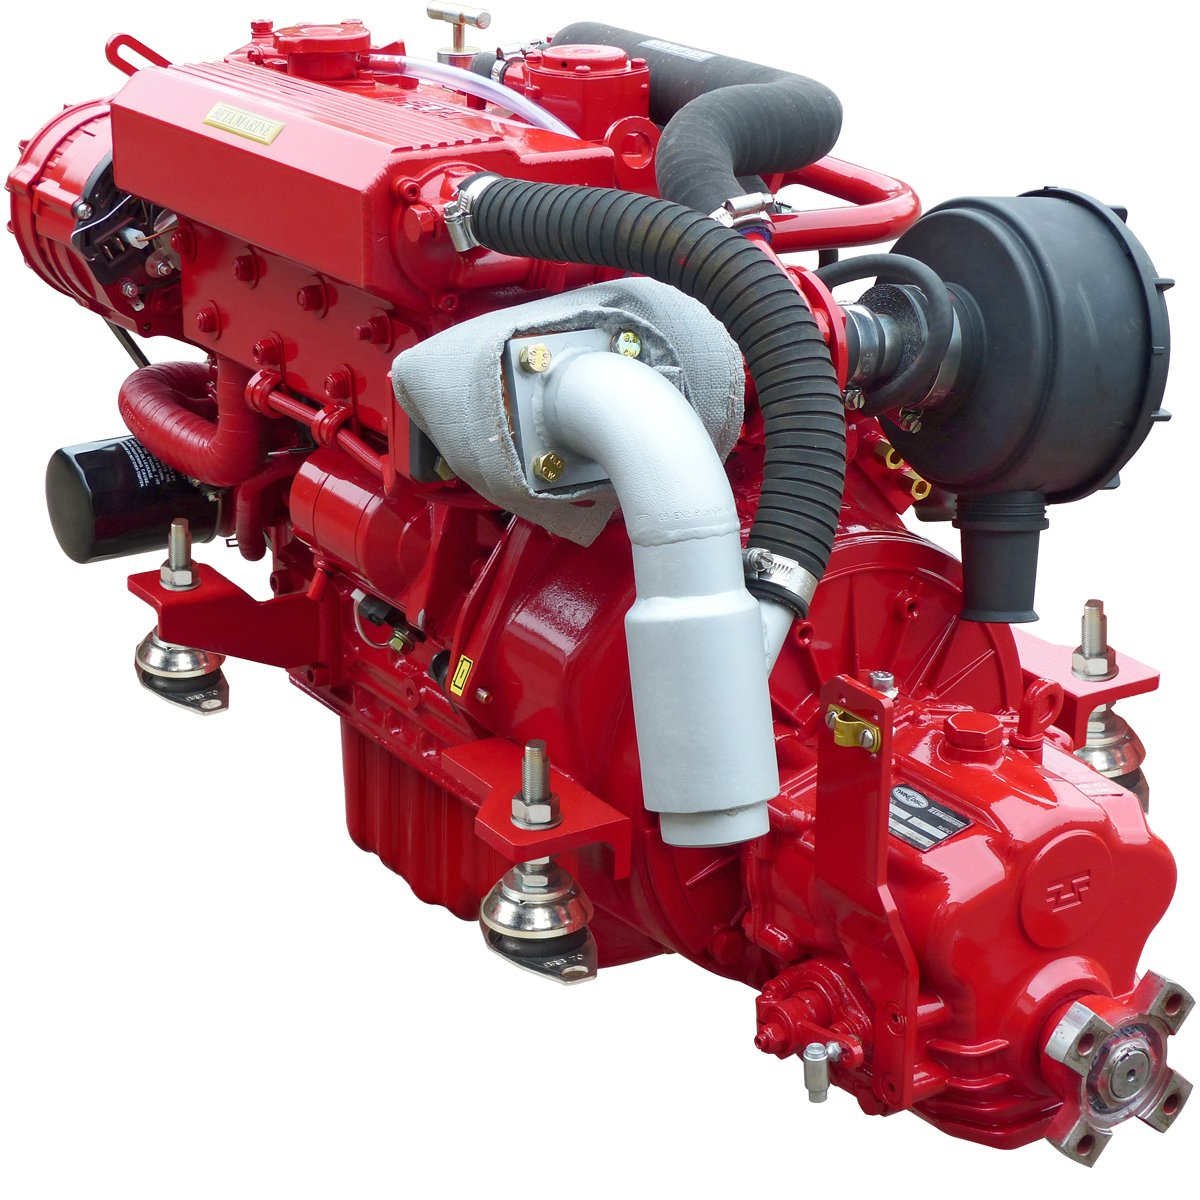 Beta Marine USA - marine diesel propulsion engines - Beta 45 heat exchanger engine